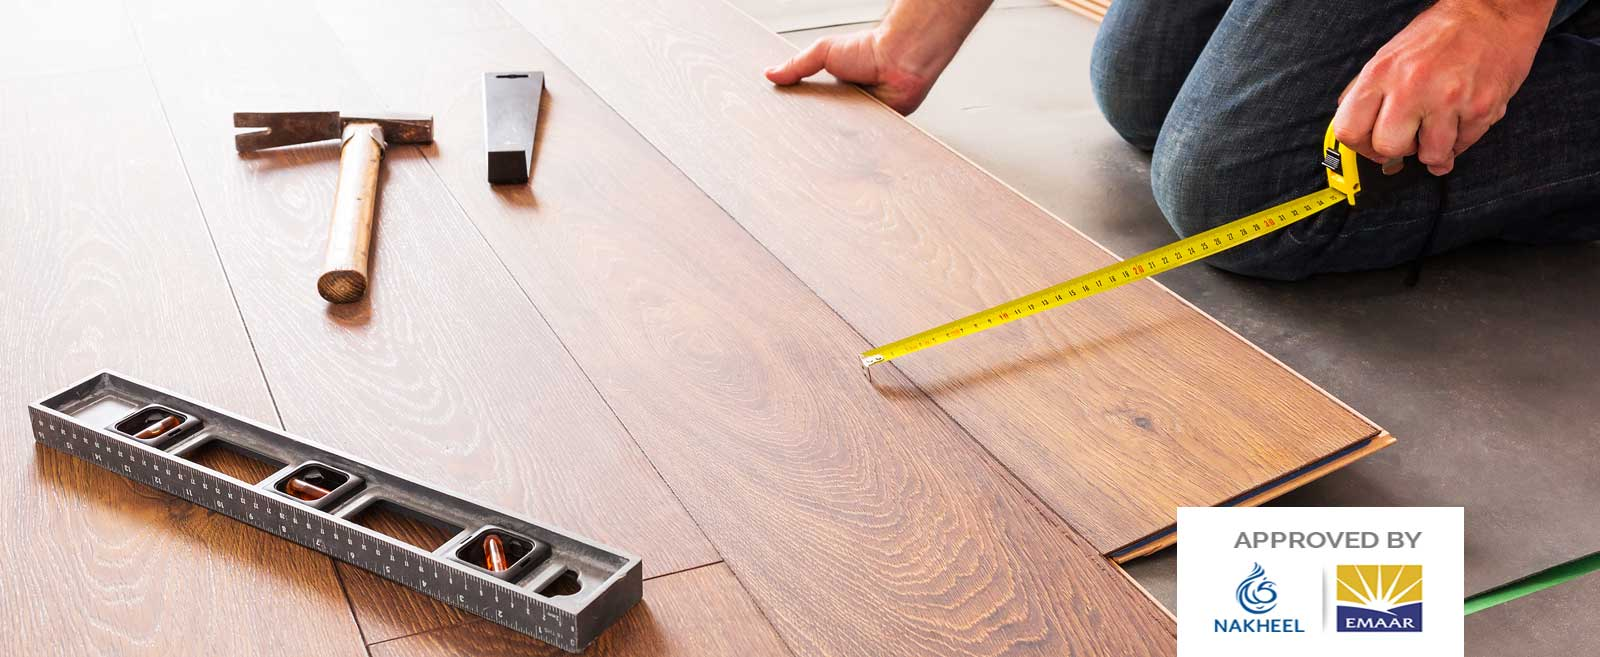 Carpentry and Flooring Services in Dubai